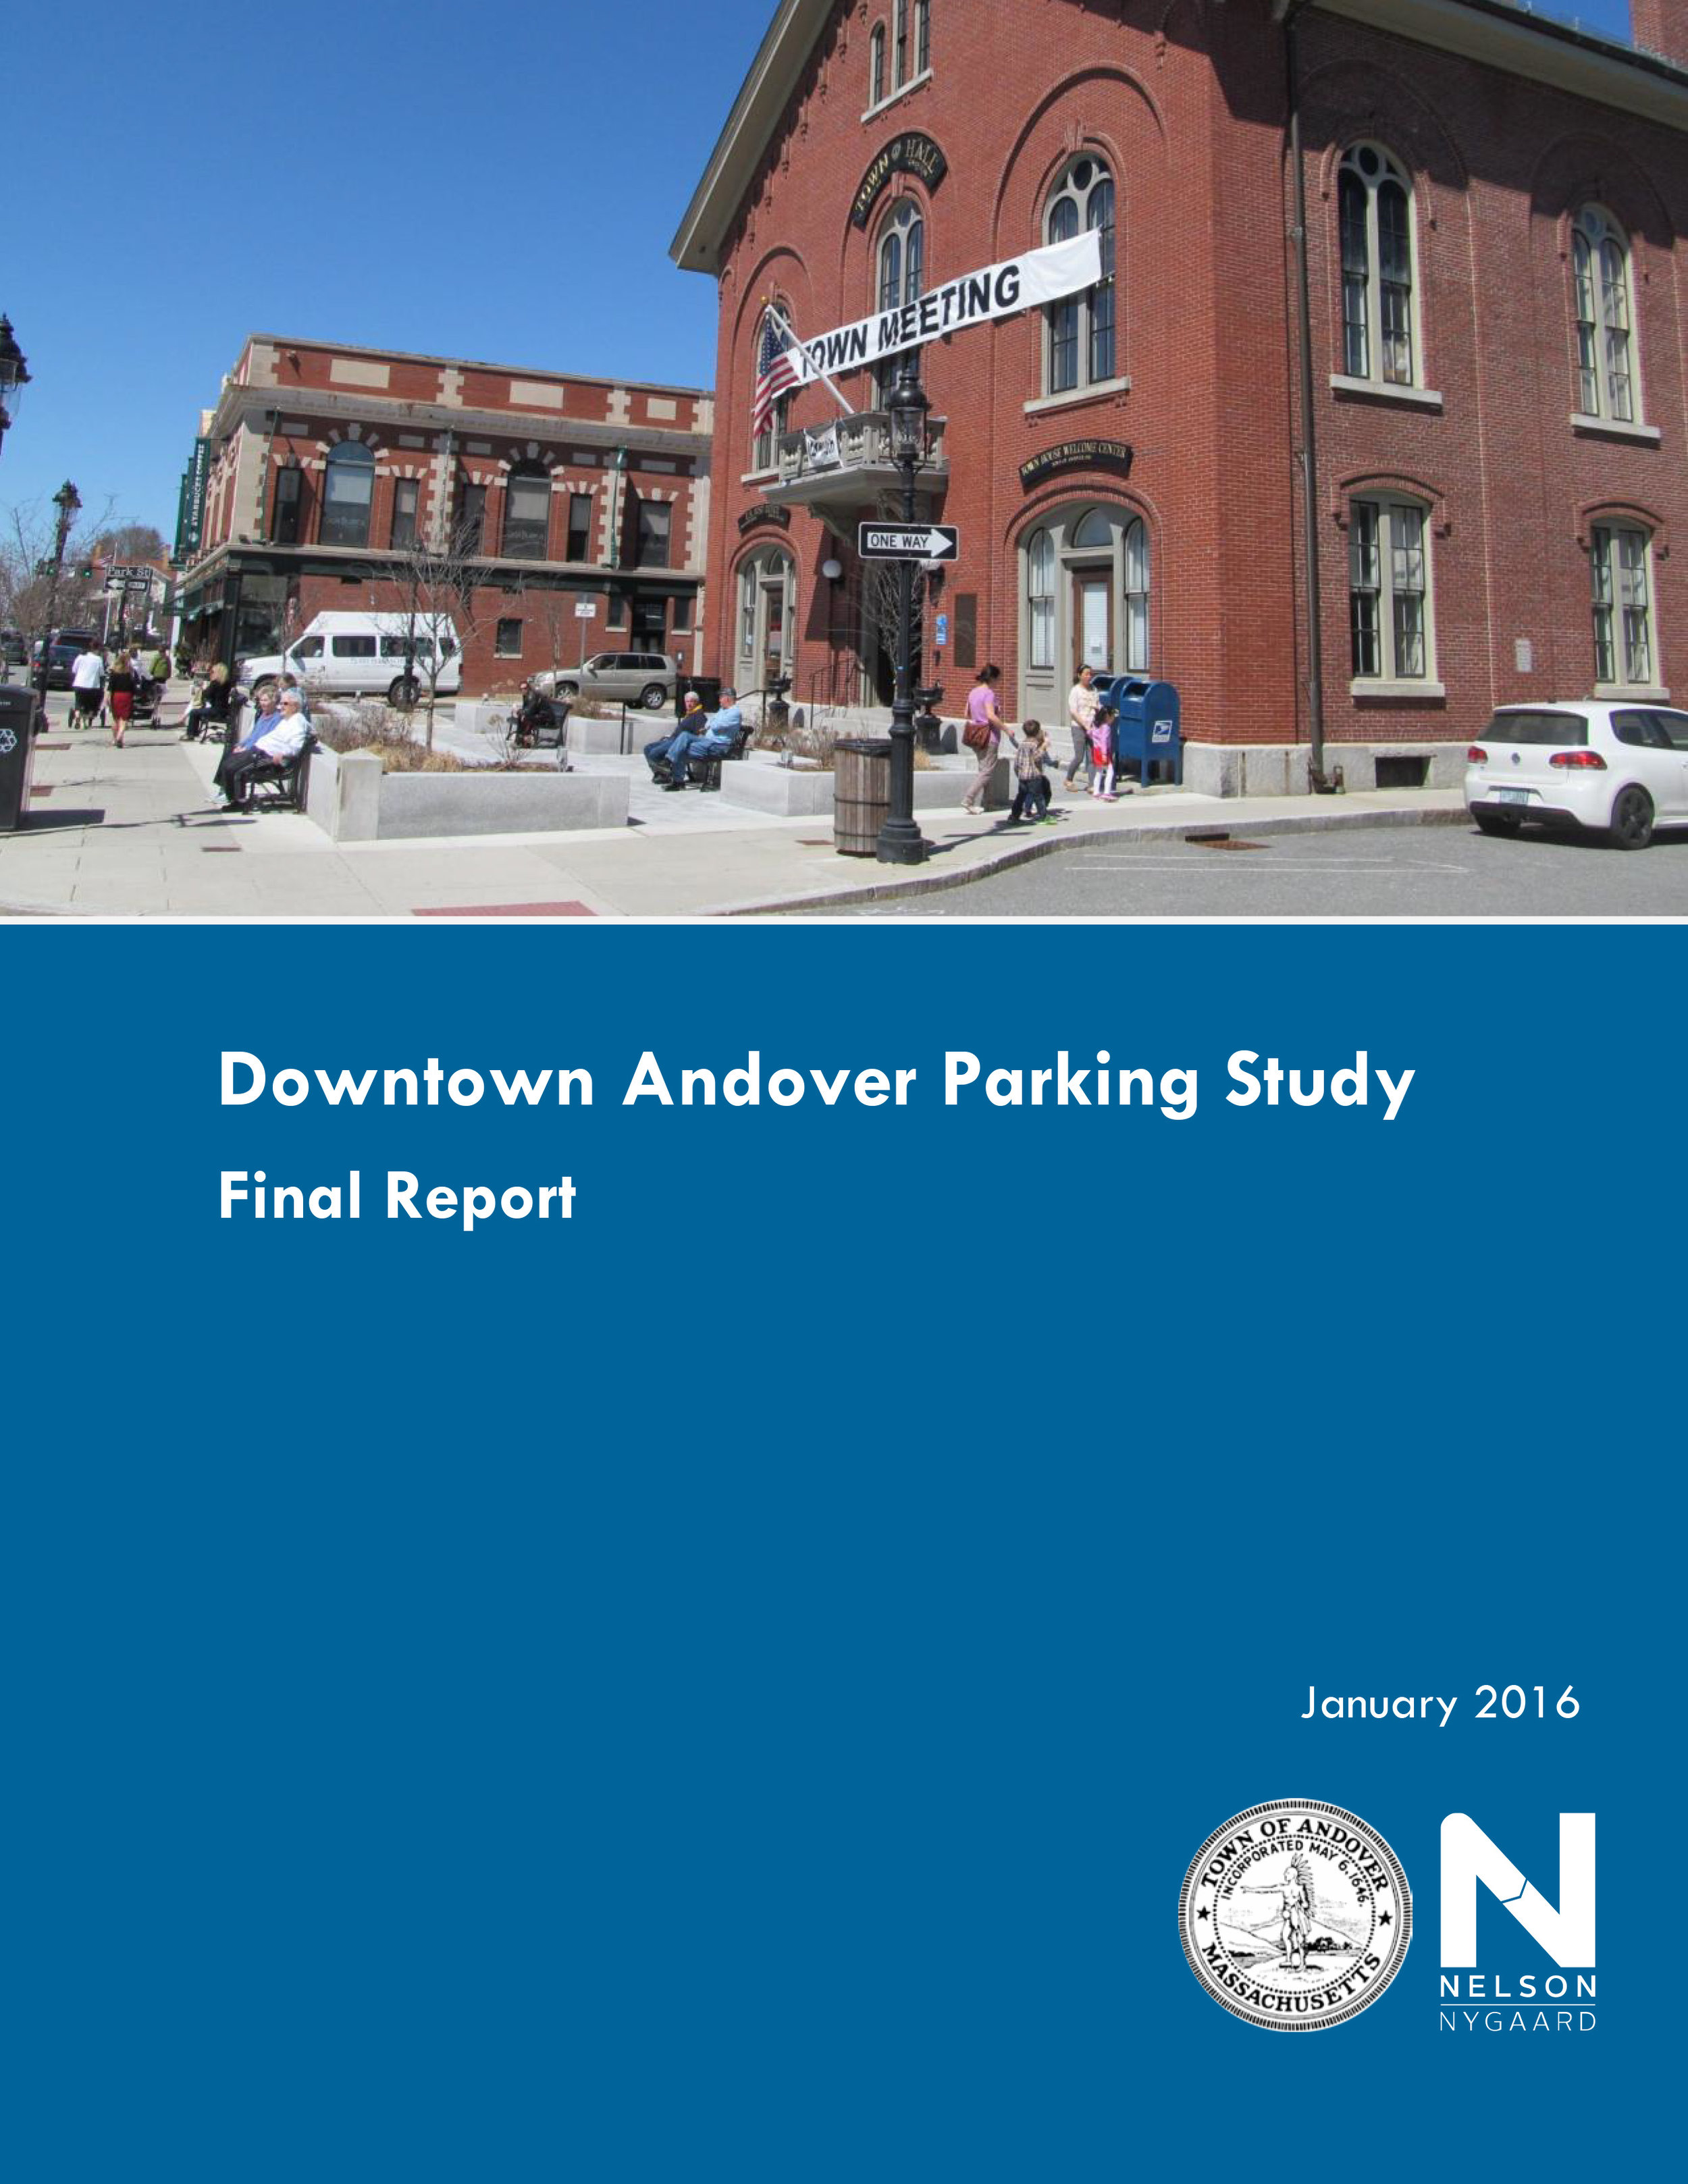 Downtown Parking Study, 2016